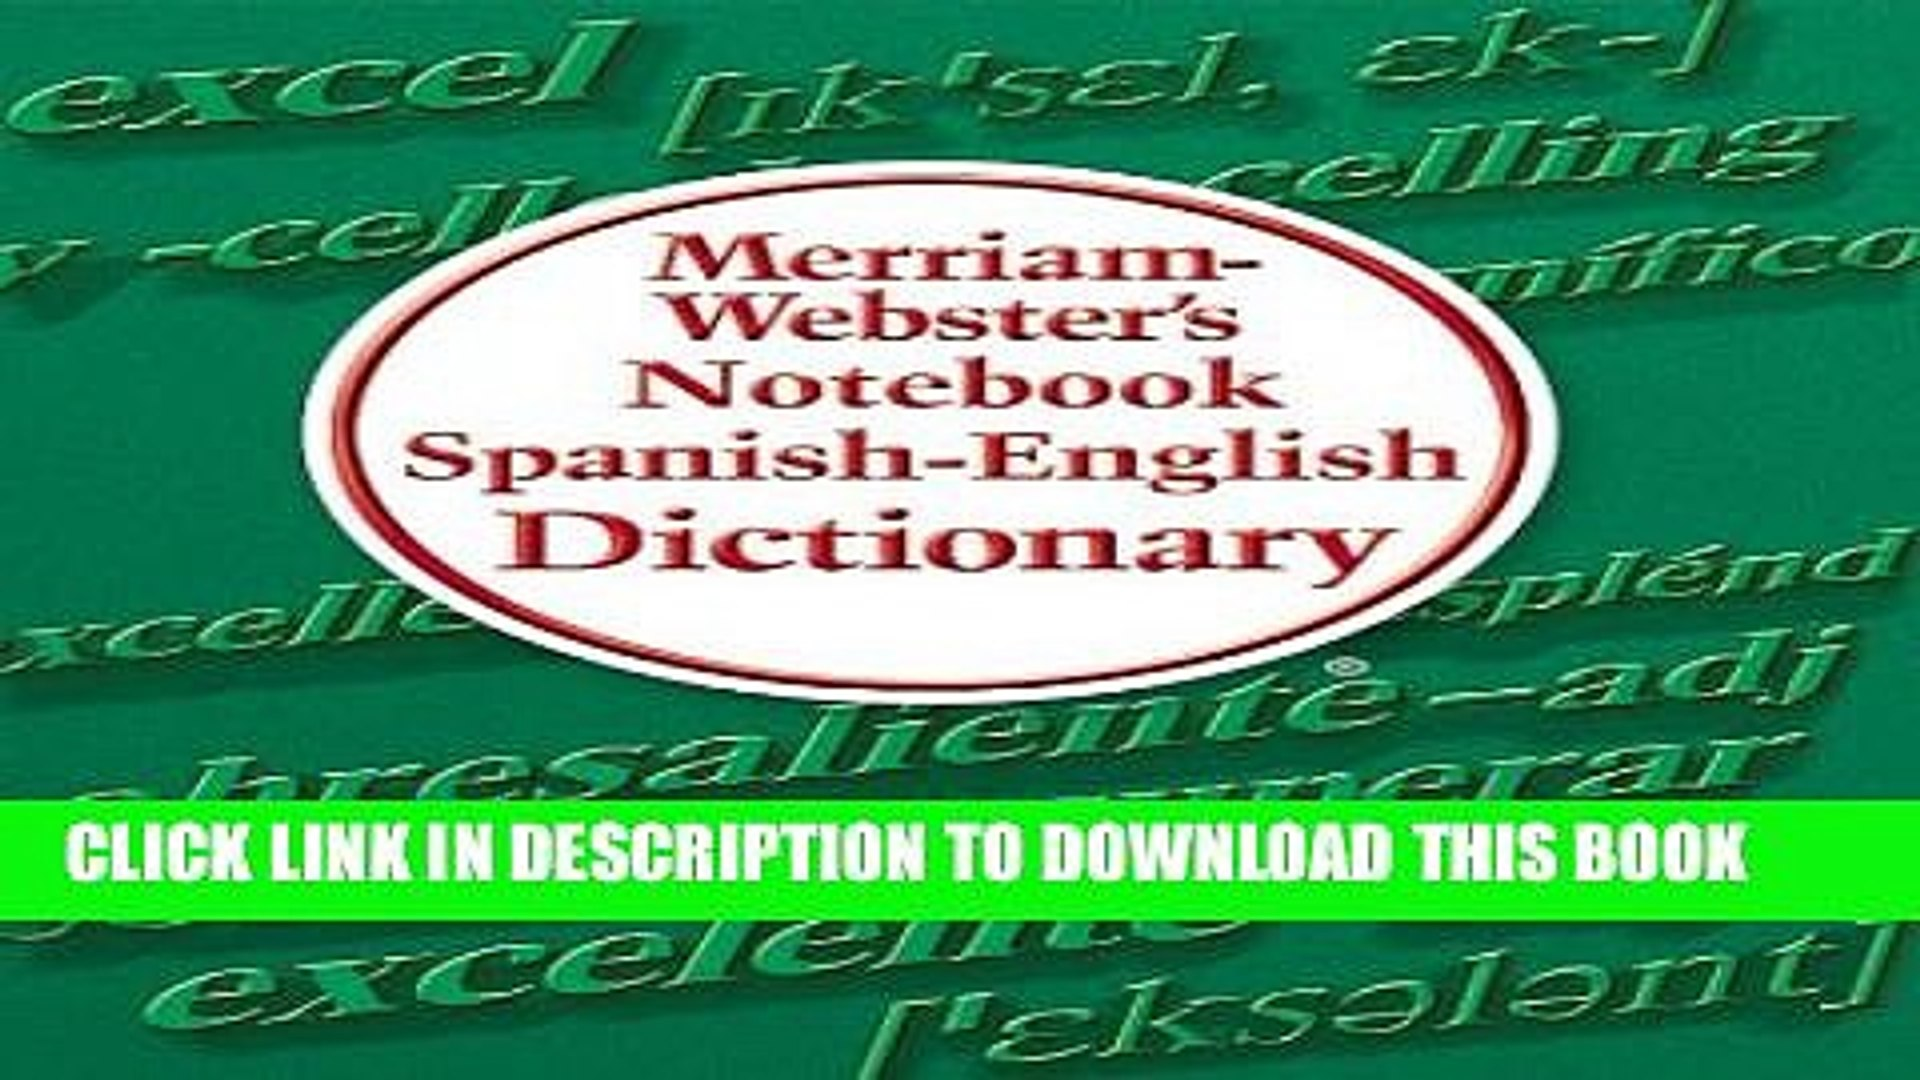 [PDF] Merriam-Webster s Notebook Spanish-English Dictionary Full Online